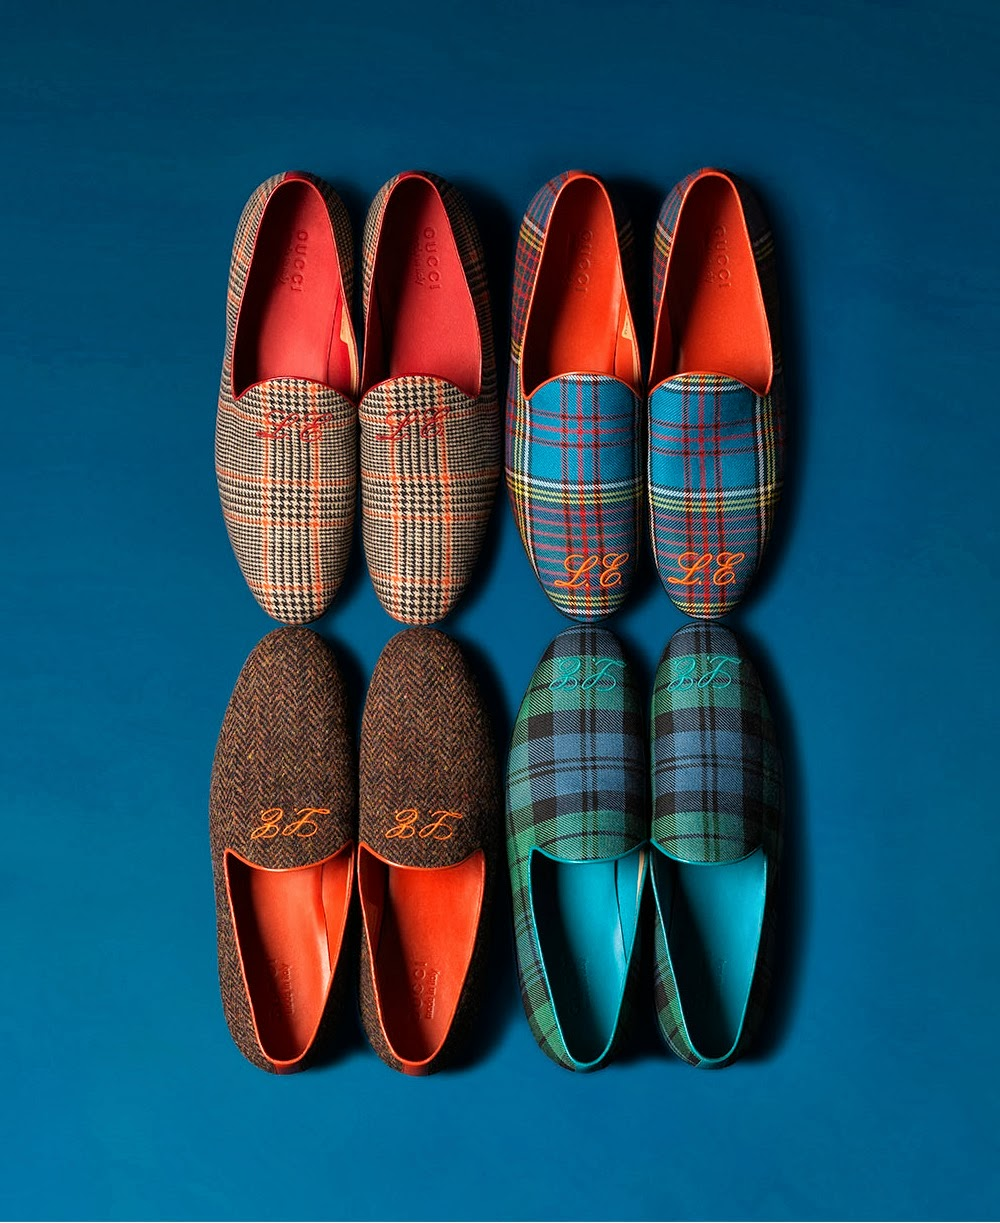 GUCCI LAPO ELKAN'S WARDROBE SLIPPER SHOES